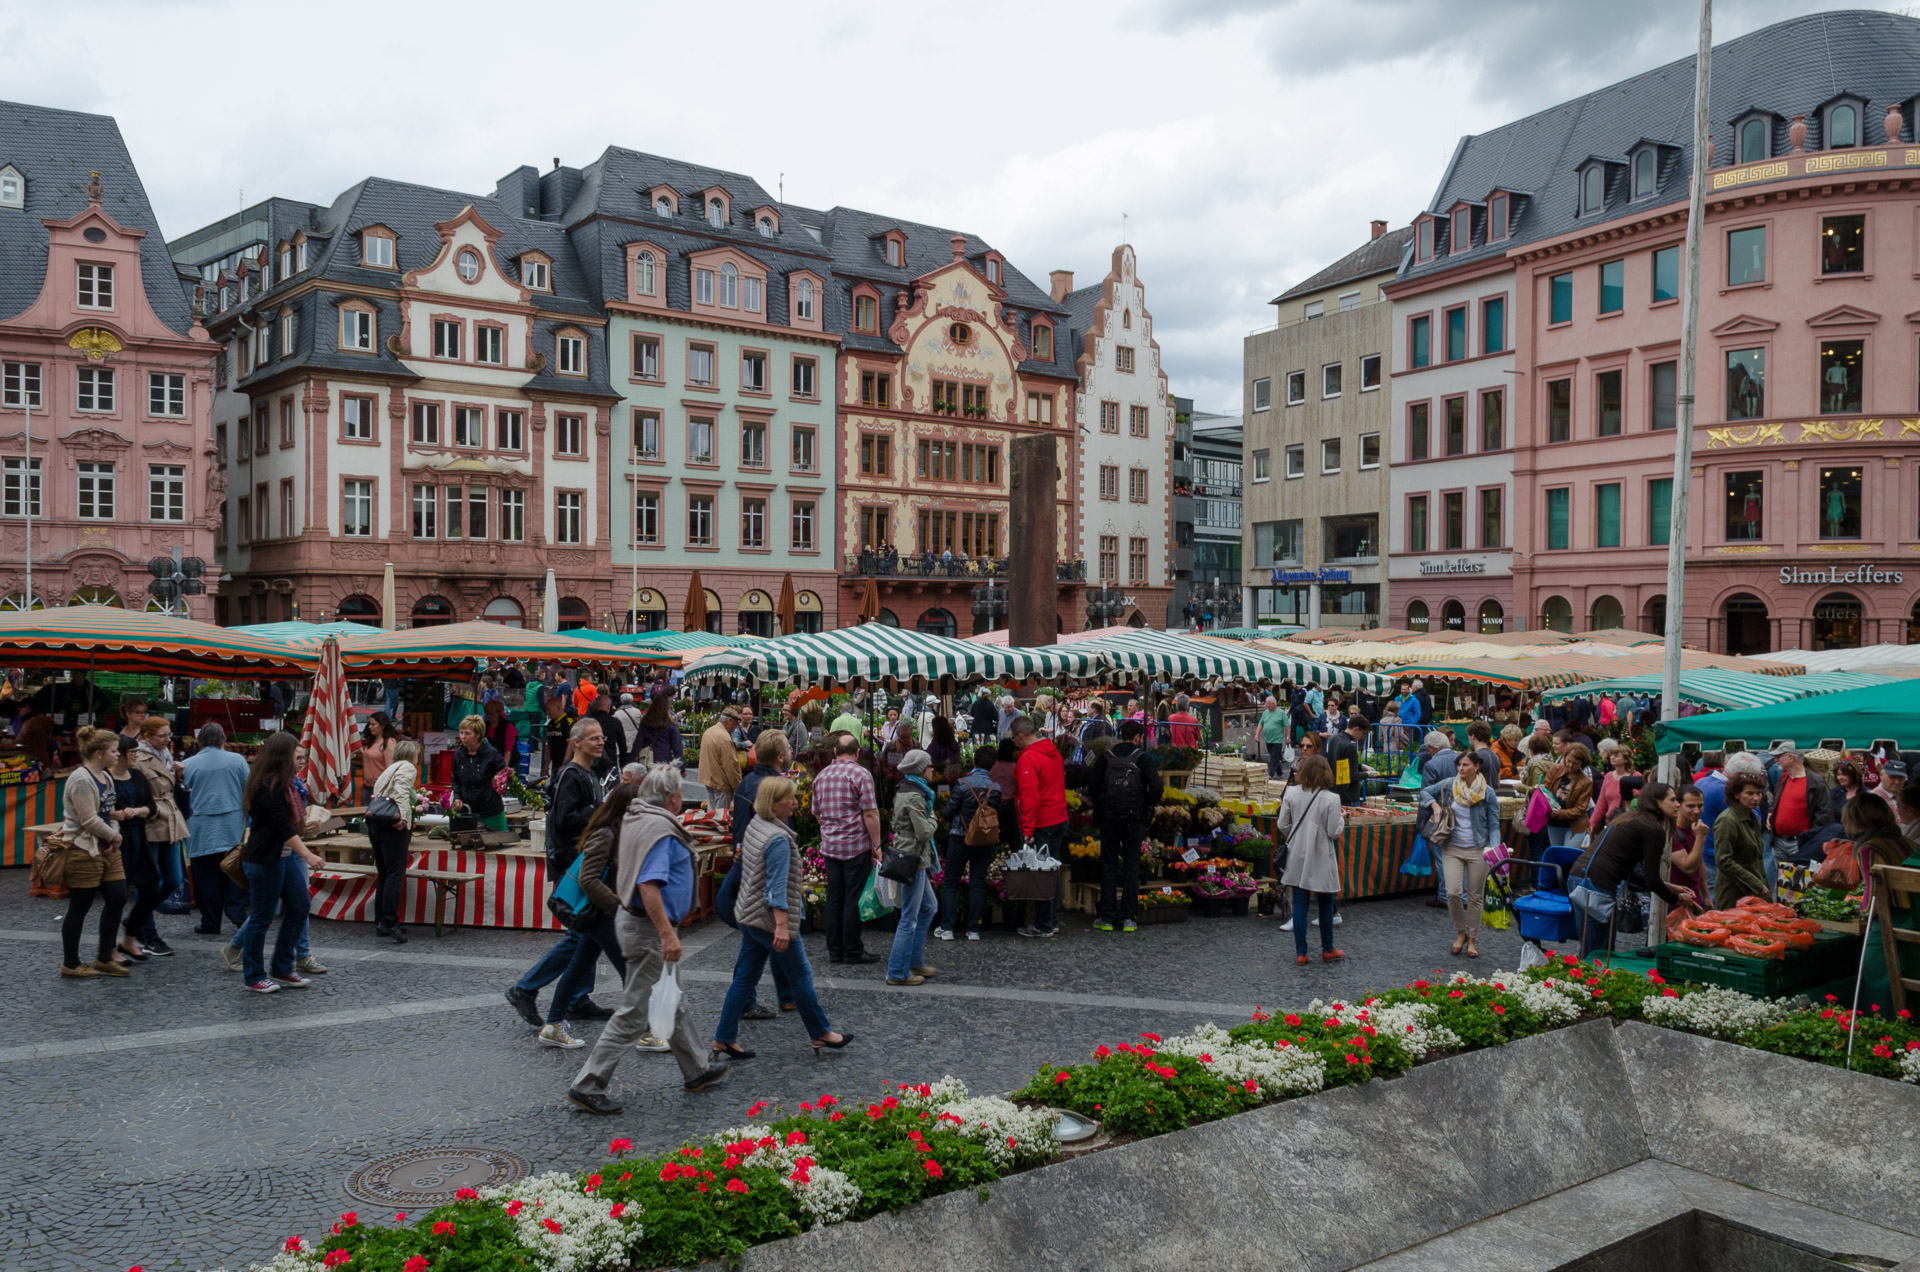 Wochenmarkt The Pfalz and Rhine Terrace, Cologne, Dresden and/or Heidelberg?? - Rick Steves Travel Forum